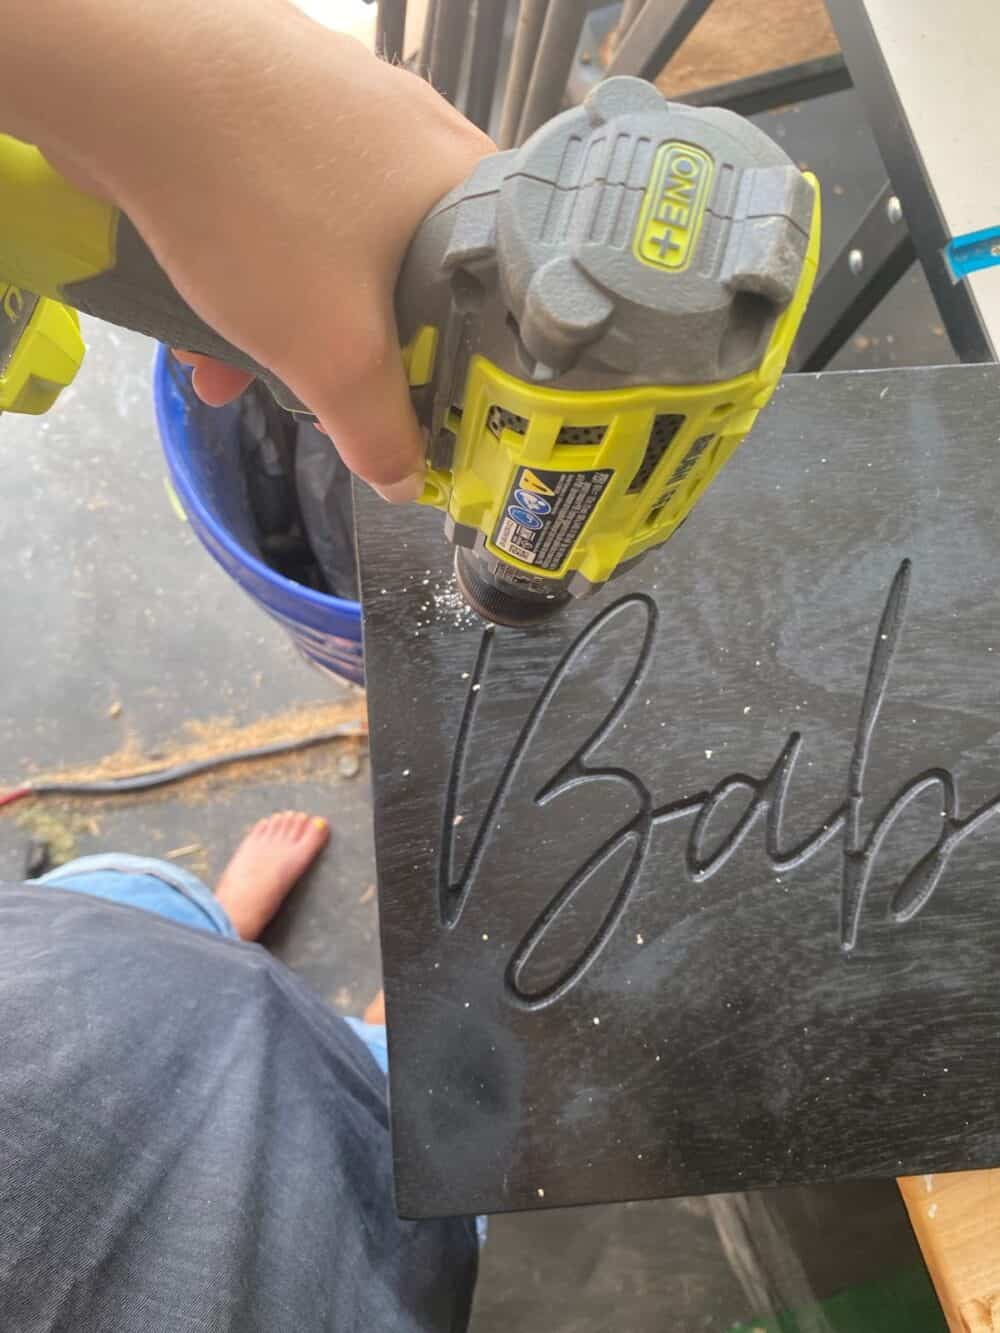 hand holding a Ryobi drill preparing to drill a hole in a DIY neon sign